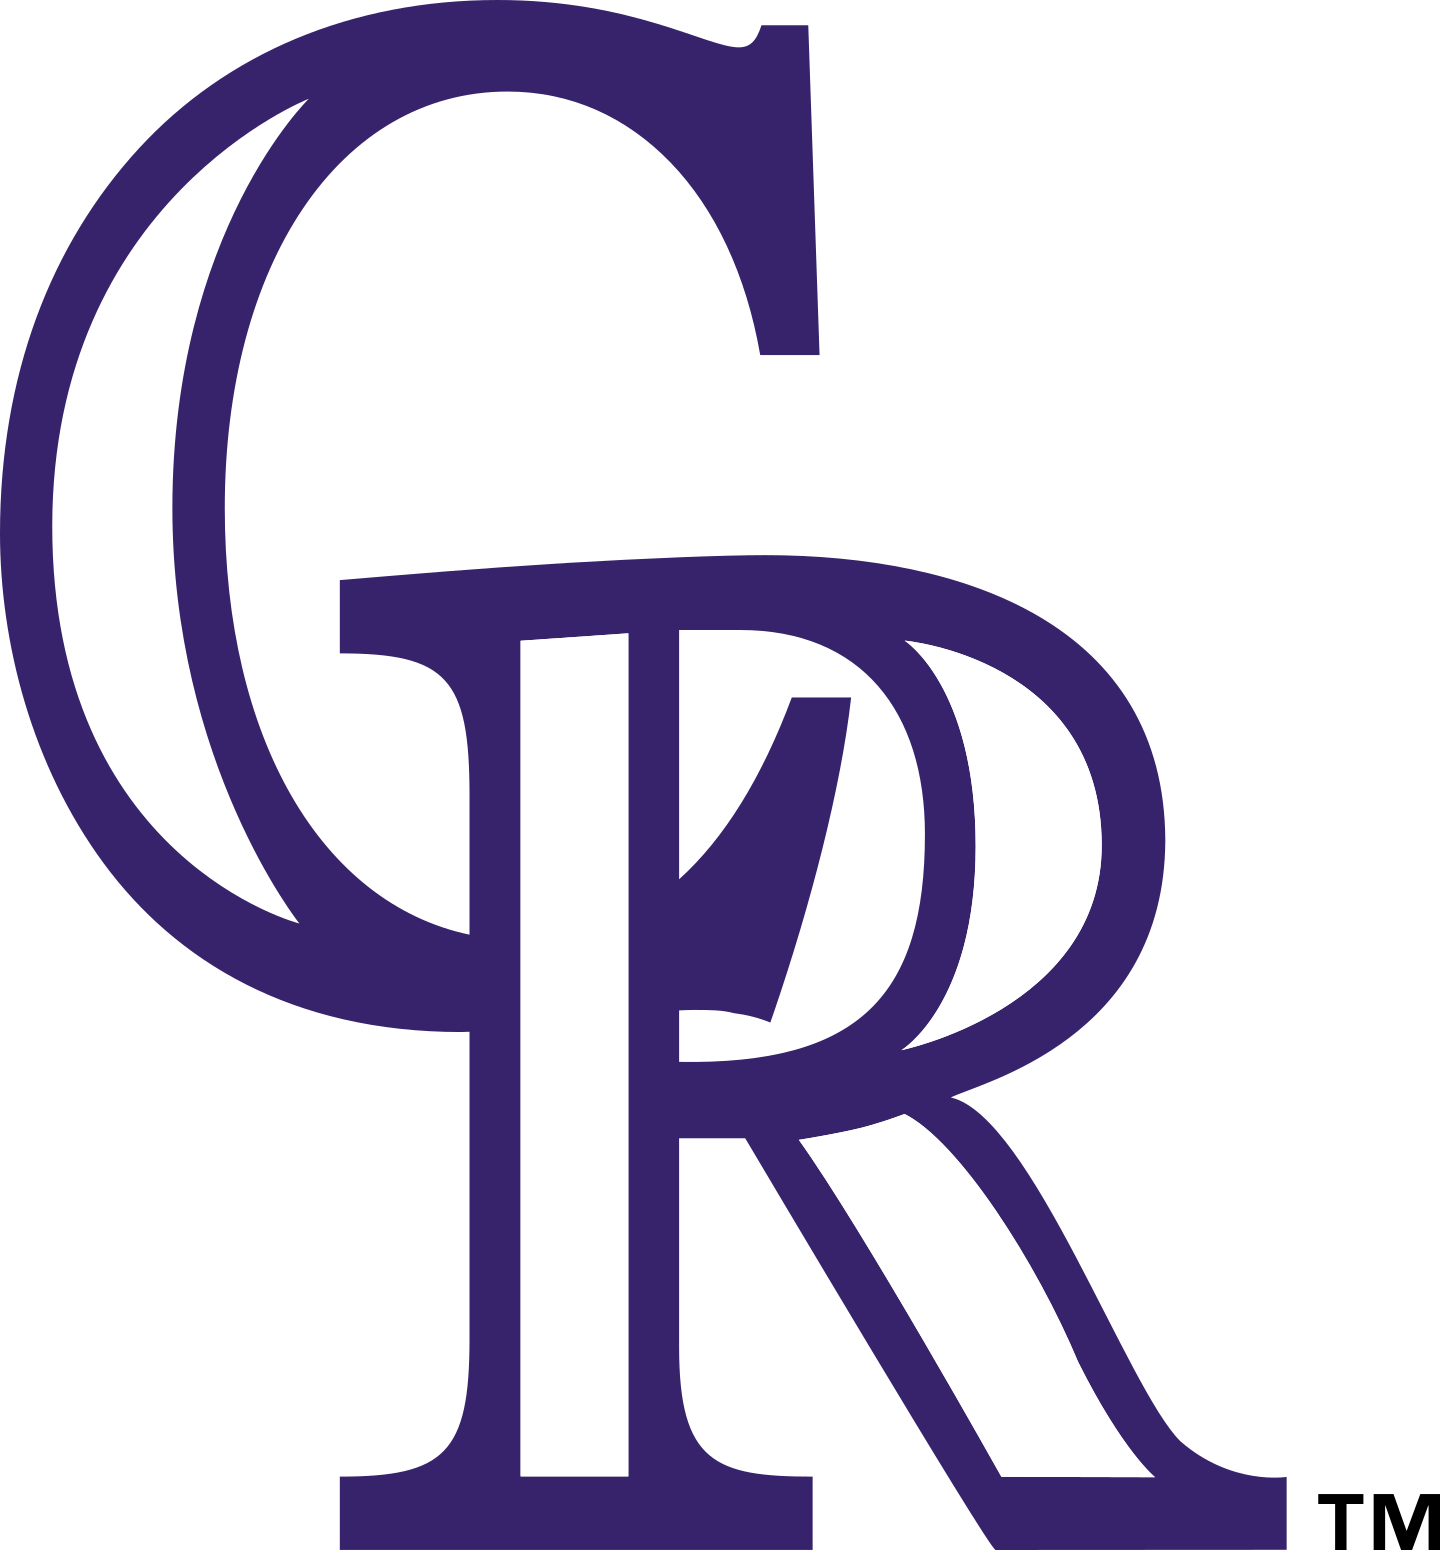 colorado rockies logo 2 - Colorado Rockies Logo